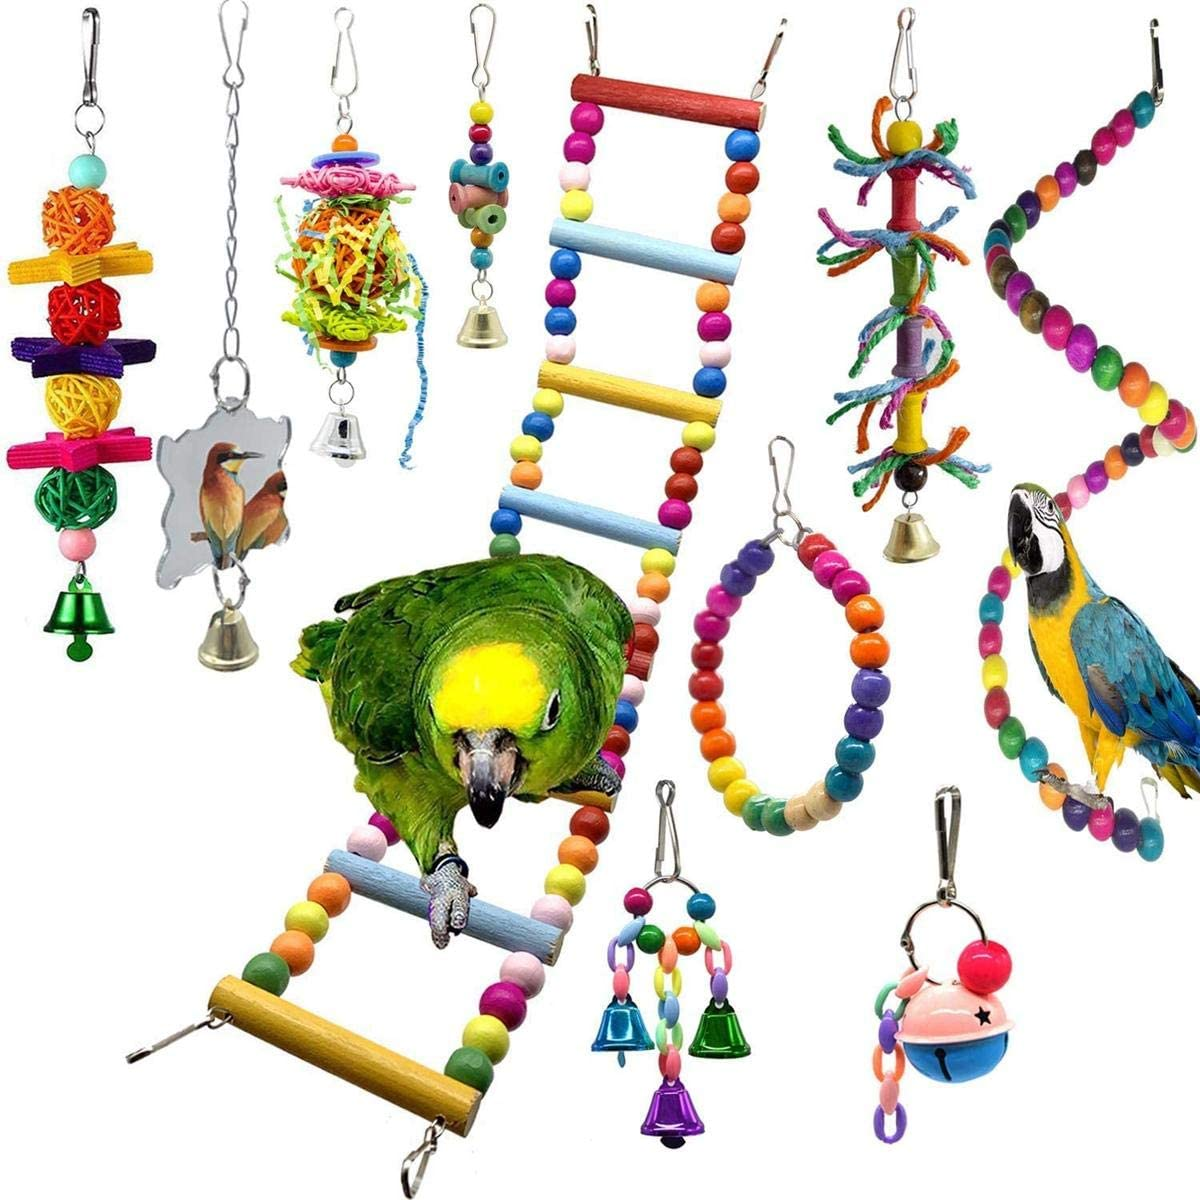 VITAKE Bird Swing Max 77% OFF Chewing Toys-Parrot 35% OFF Toys Hammock C Parrot Bell